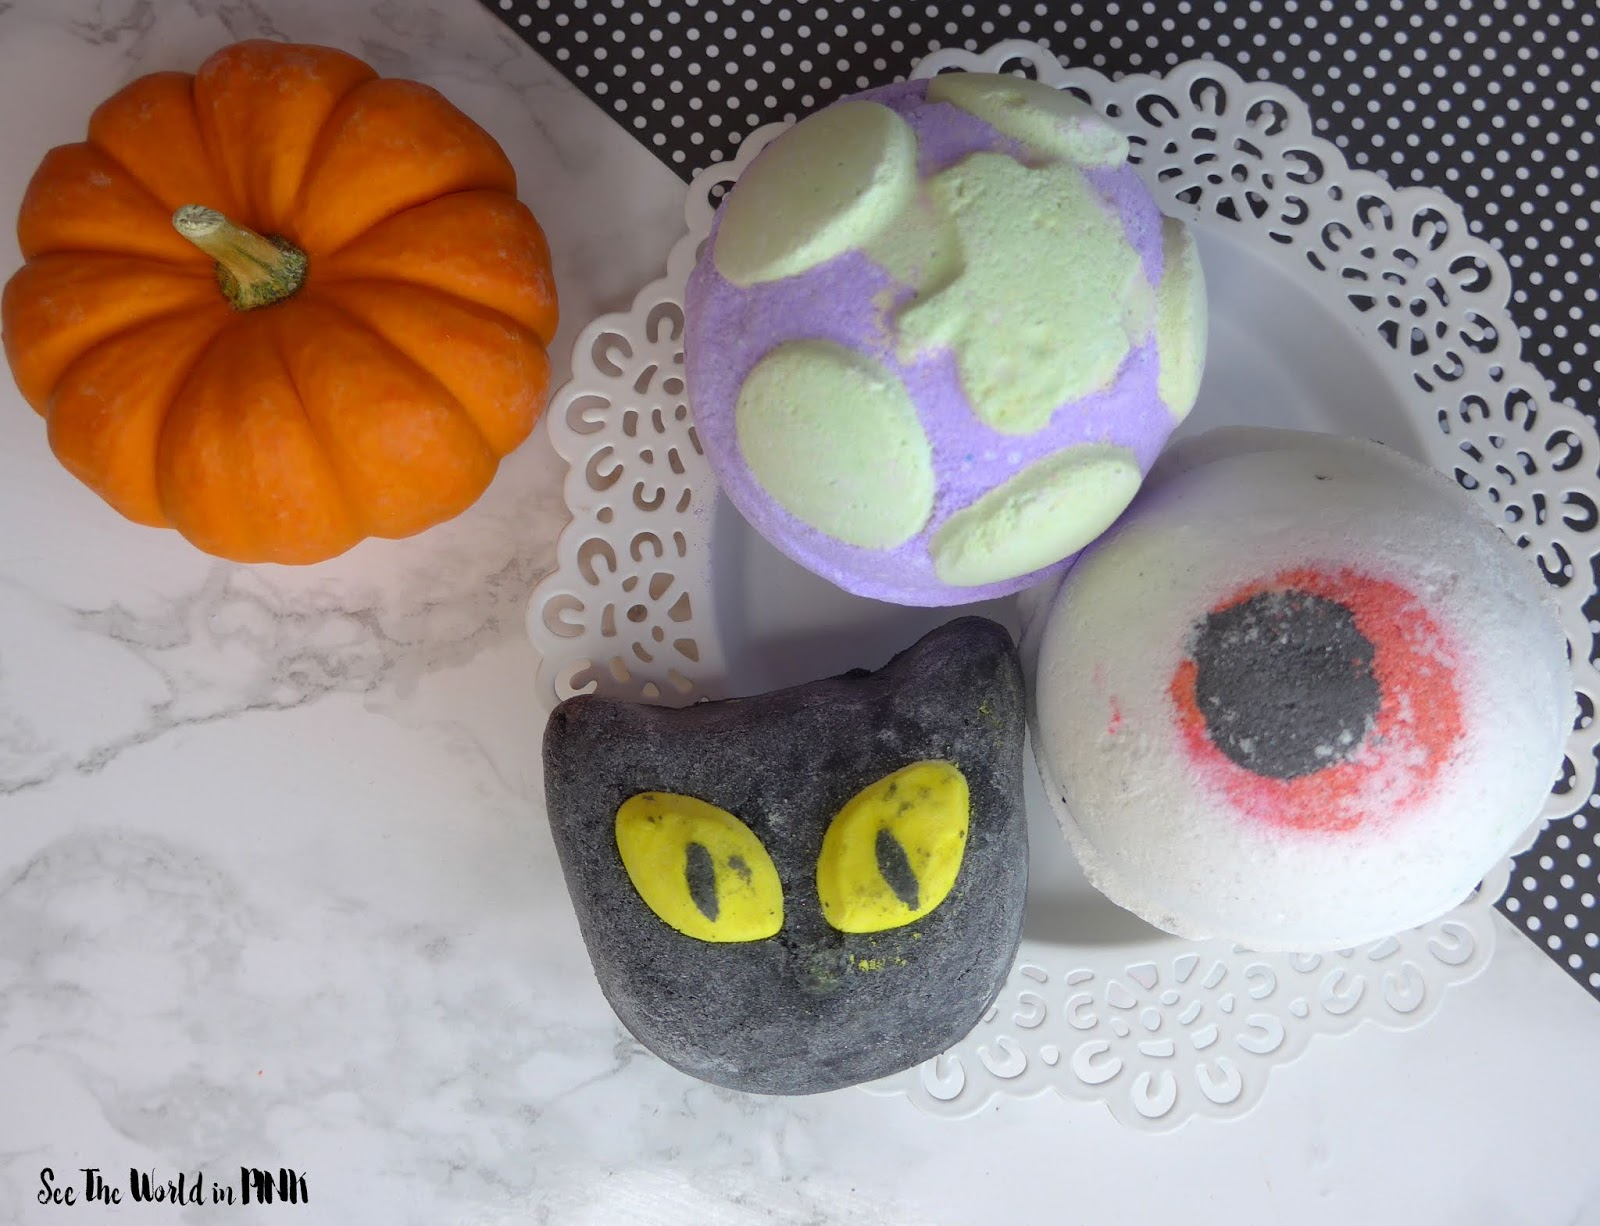 Skincare Sunday - Lush Halloween Goodies!